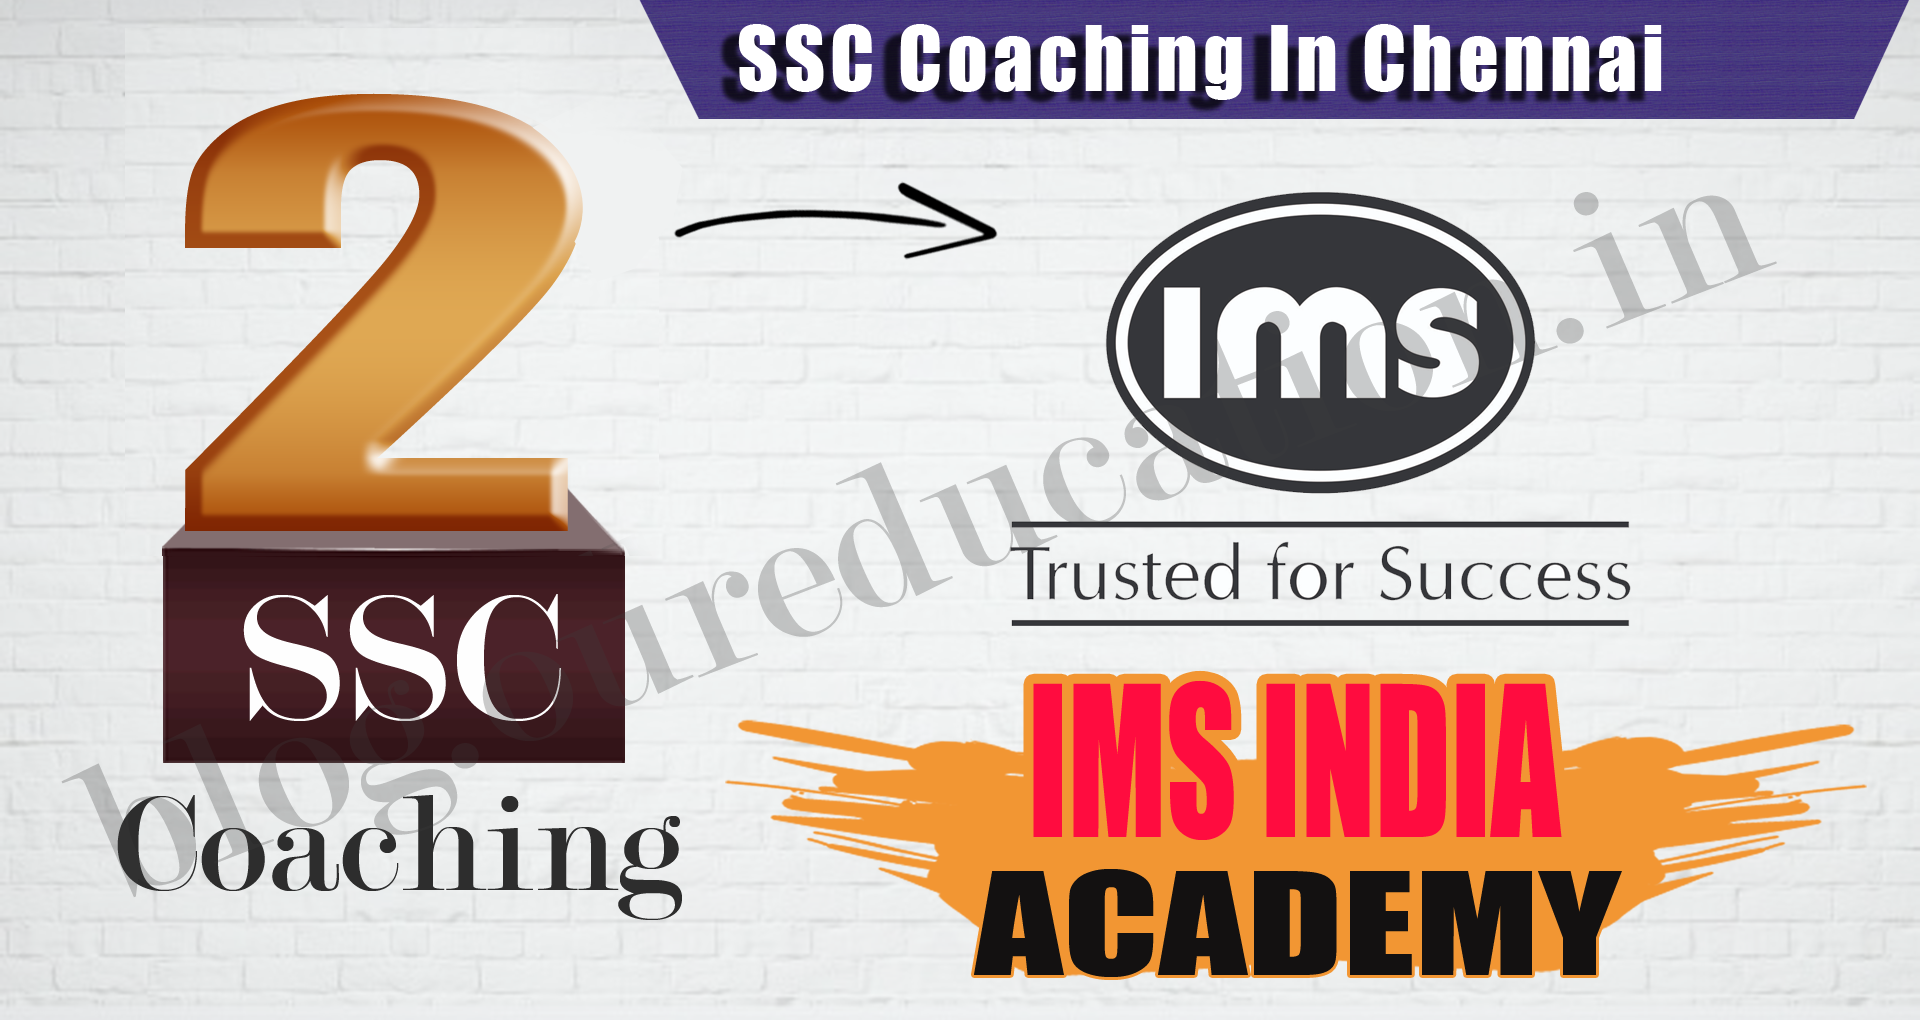 Top 10 SSC Coaching Centres in Chennai